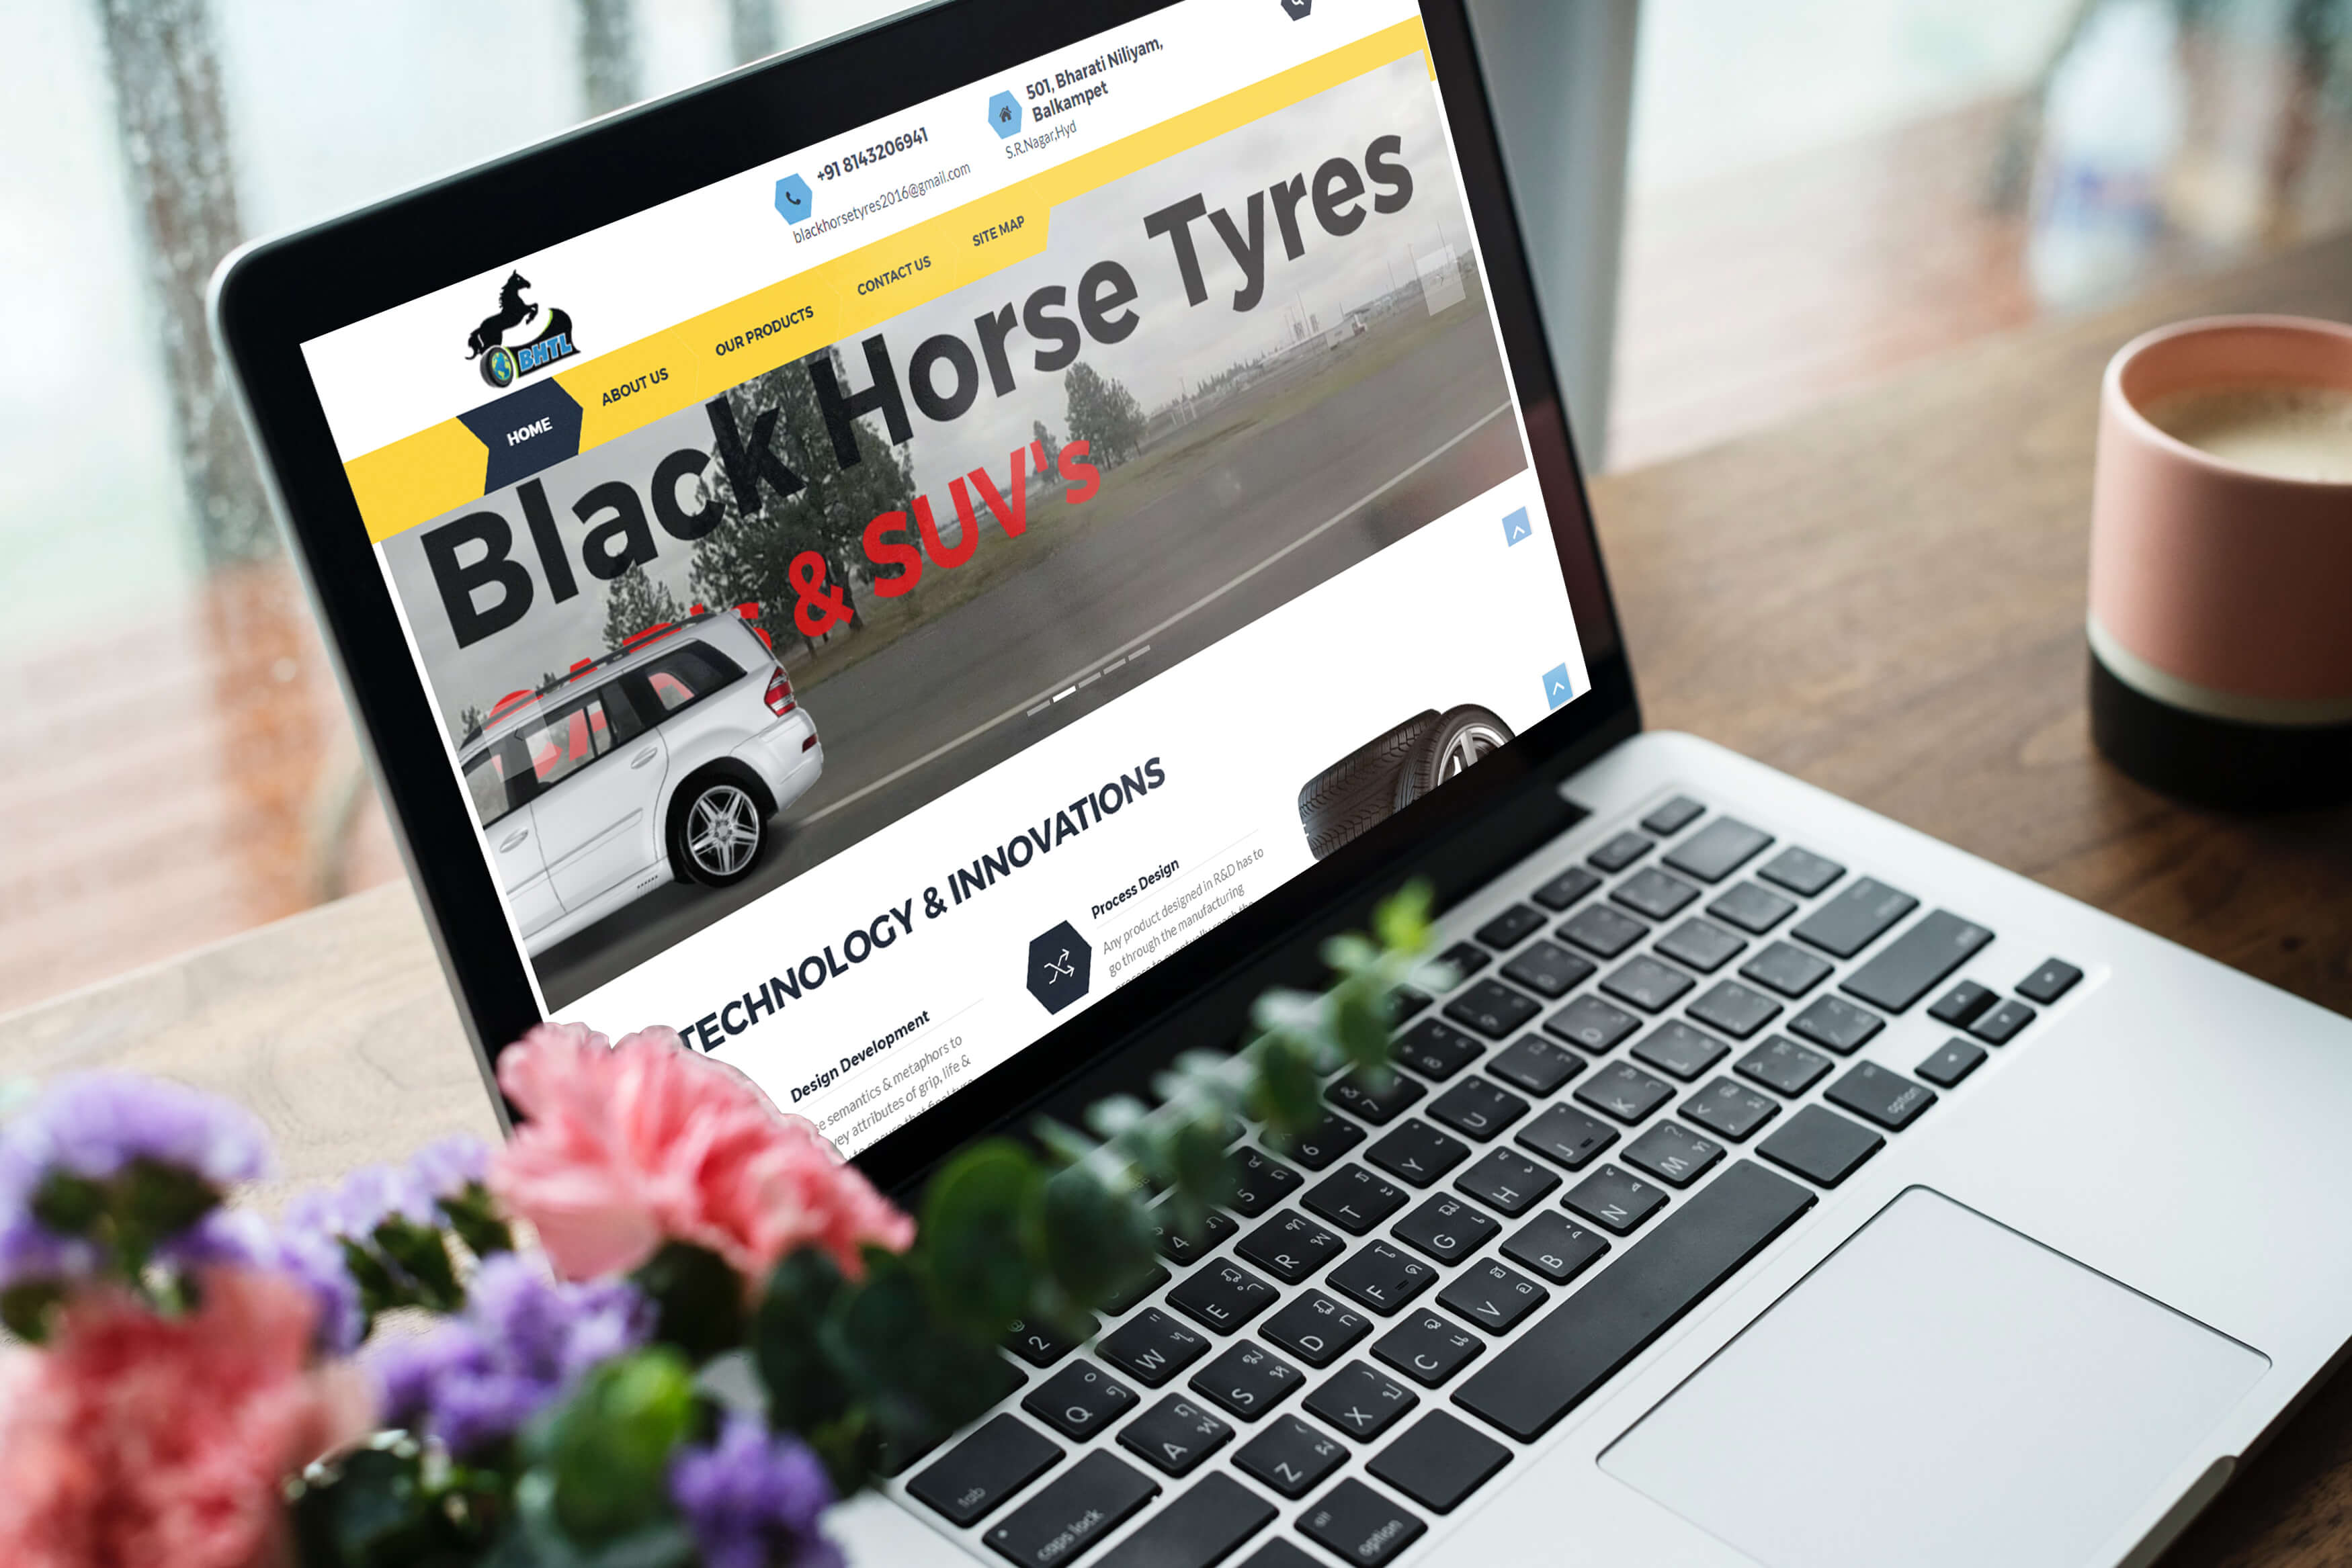 Blackhorse tyres Website by Oacer web services